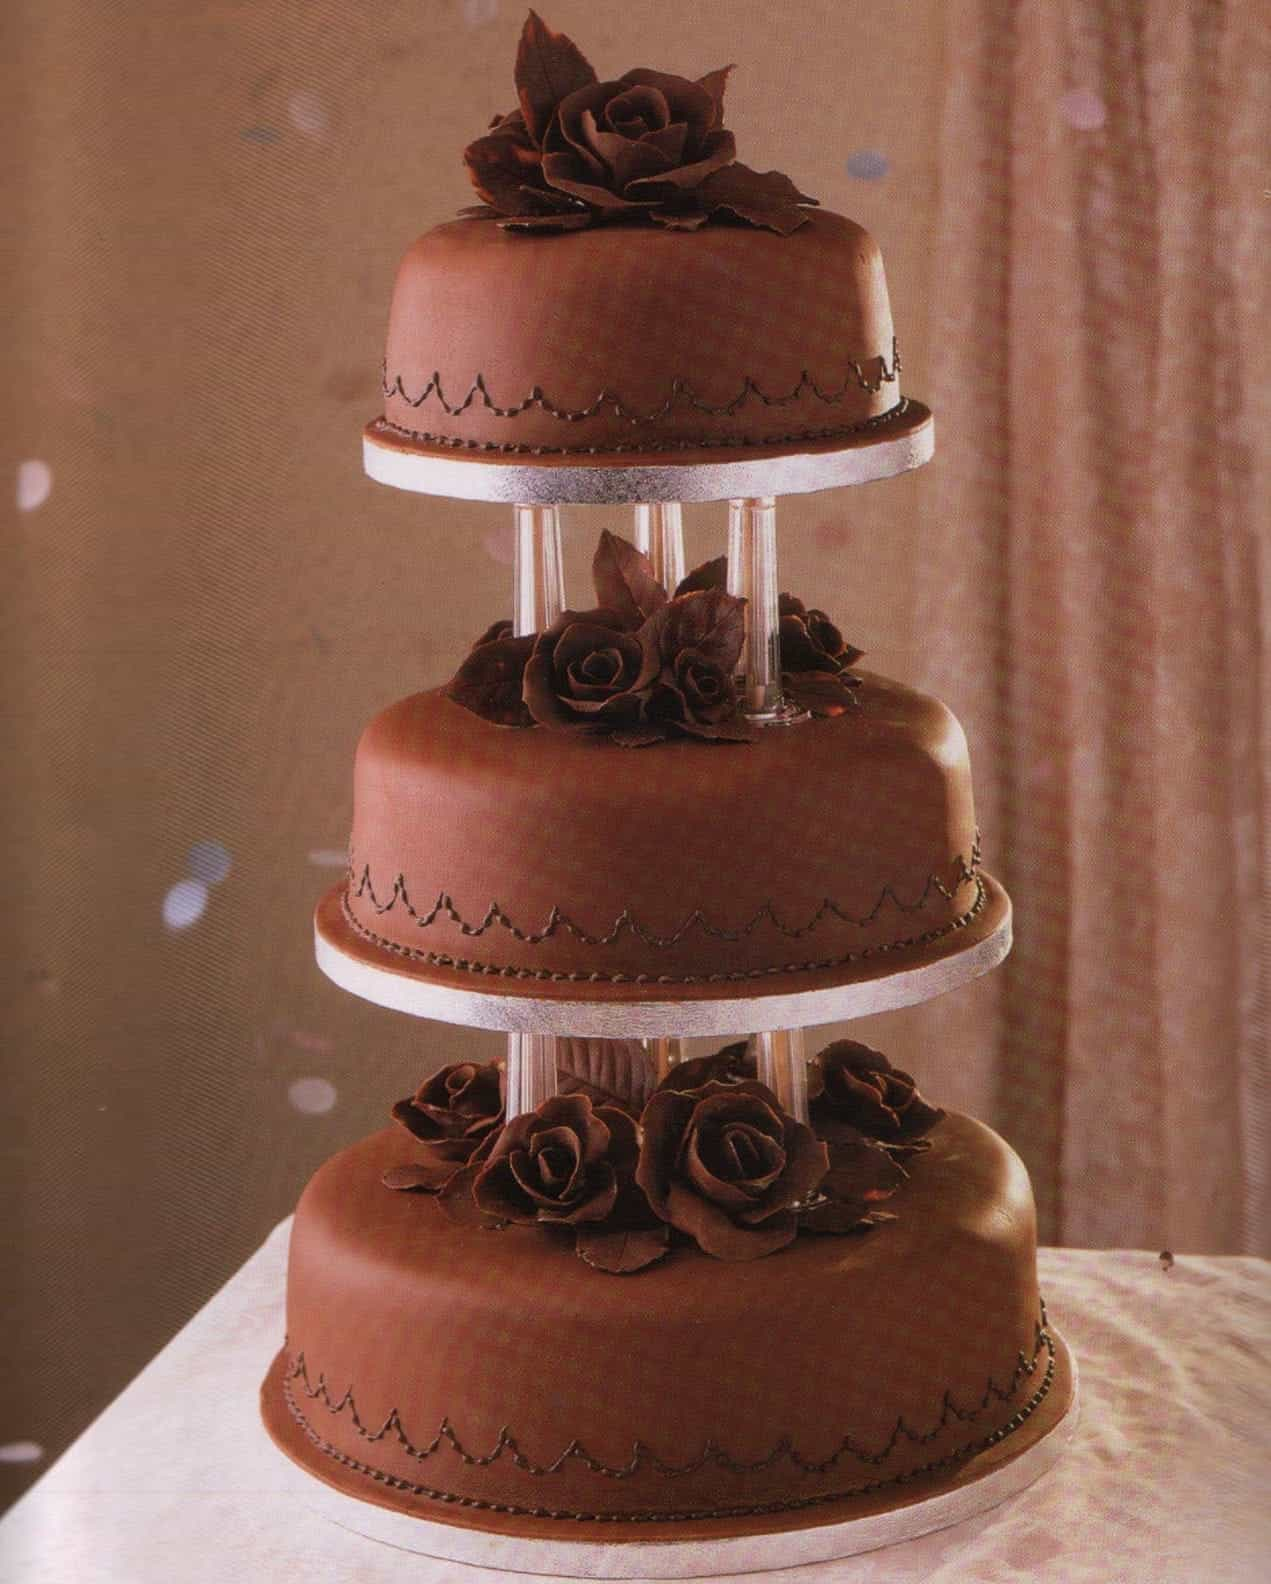 Three Tiers Long Chocolate Wedding Cake (View 11 of 30)